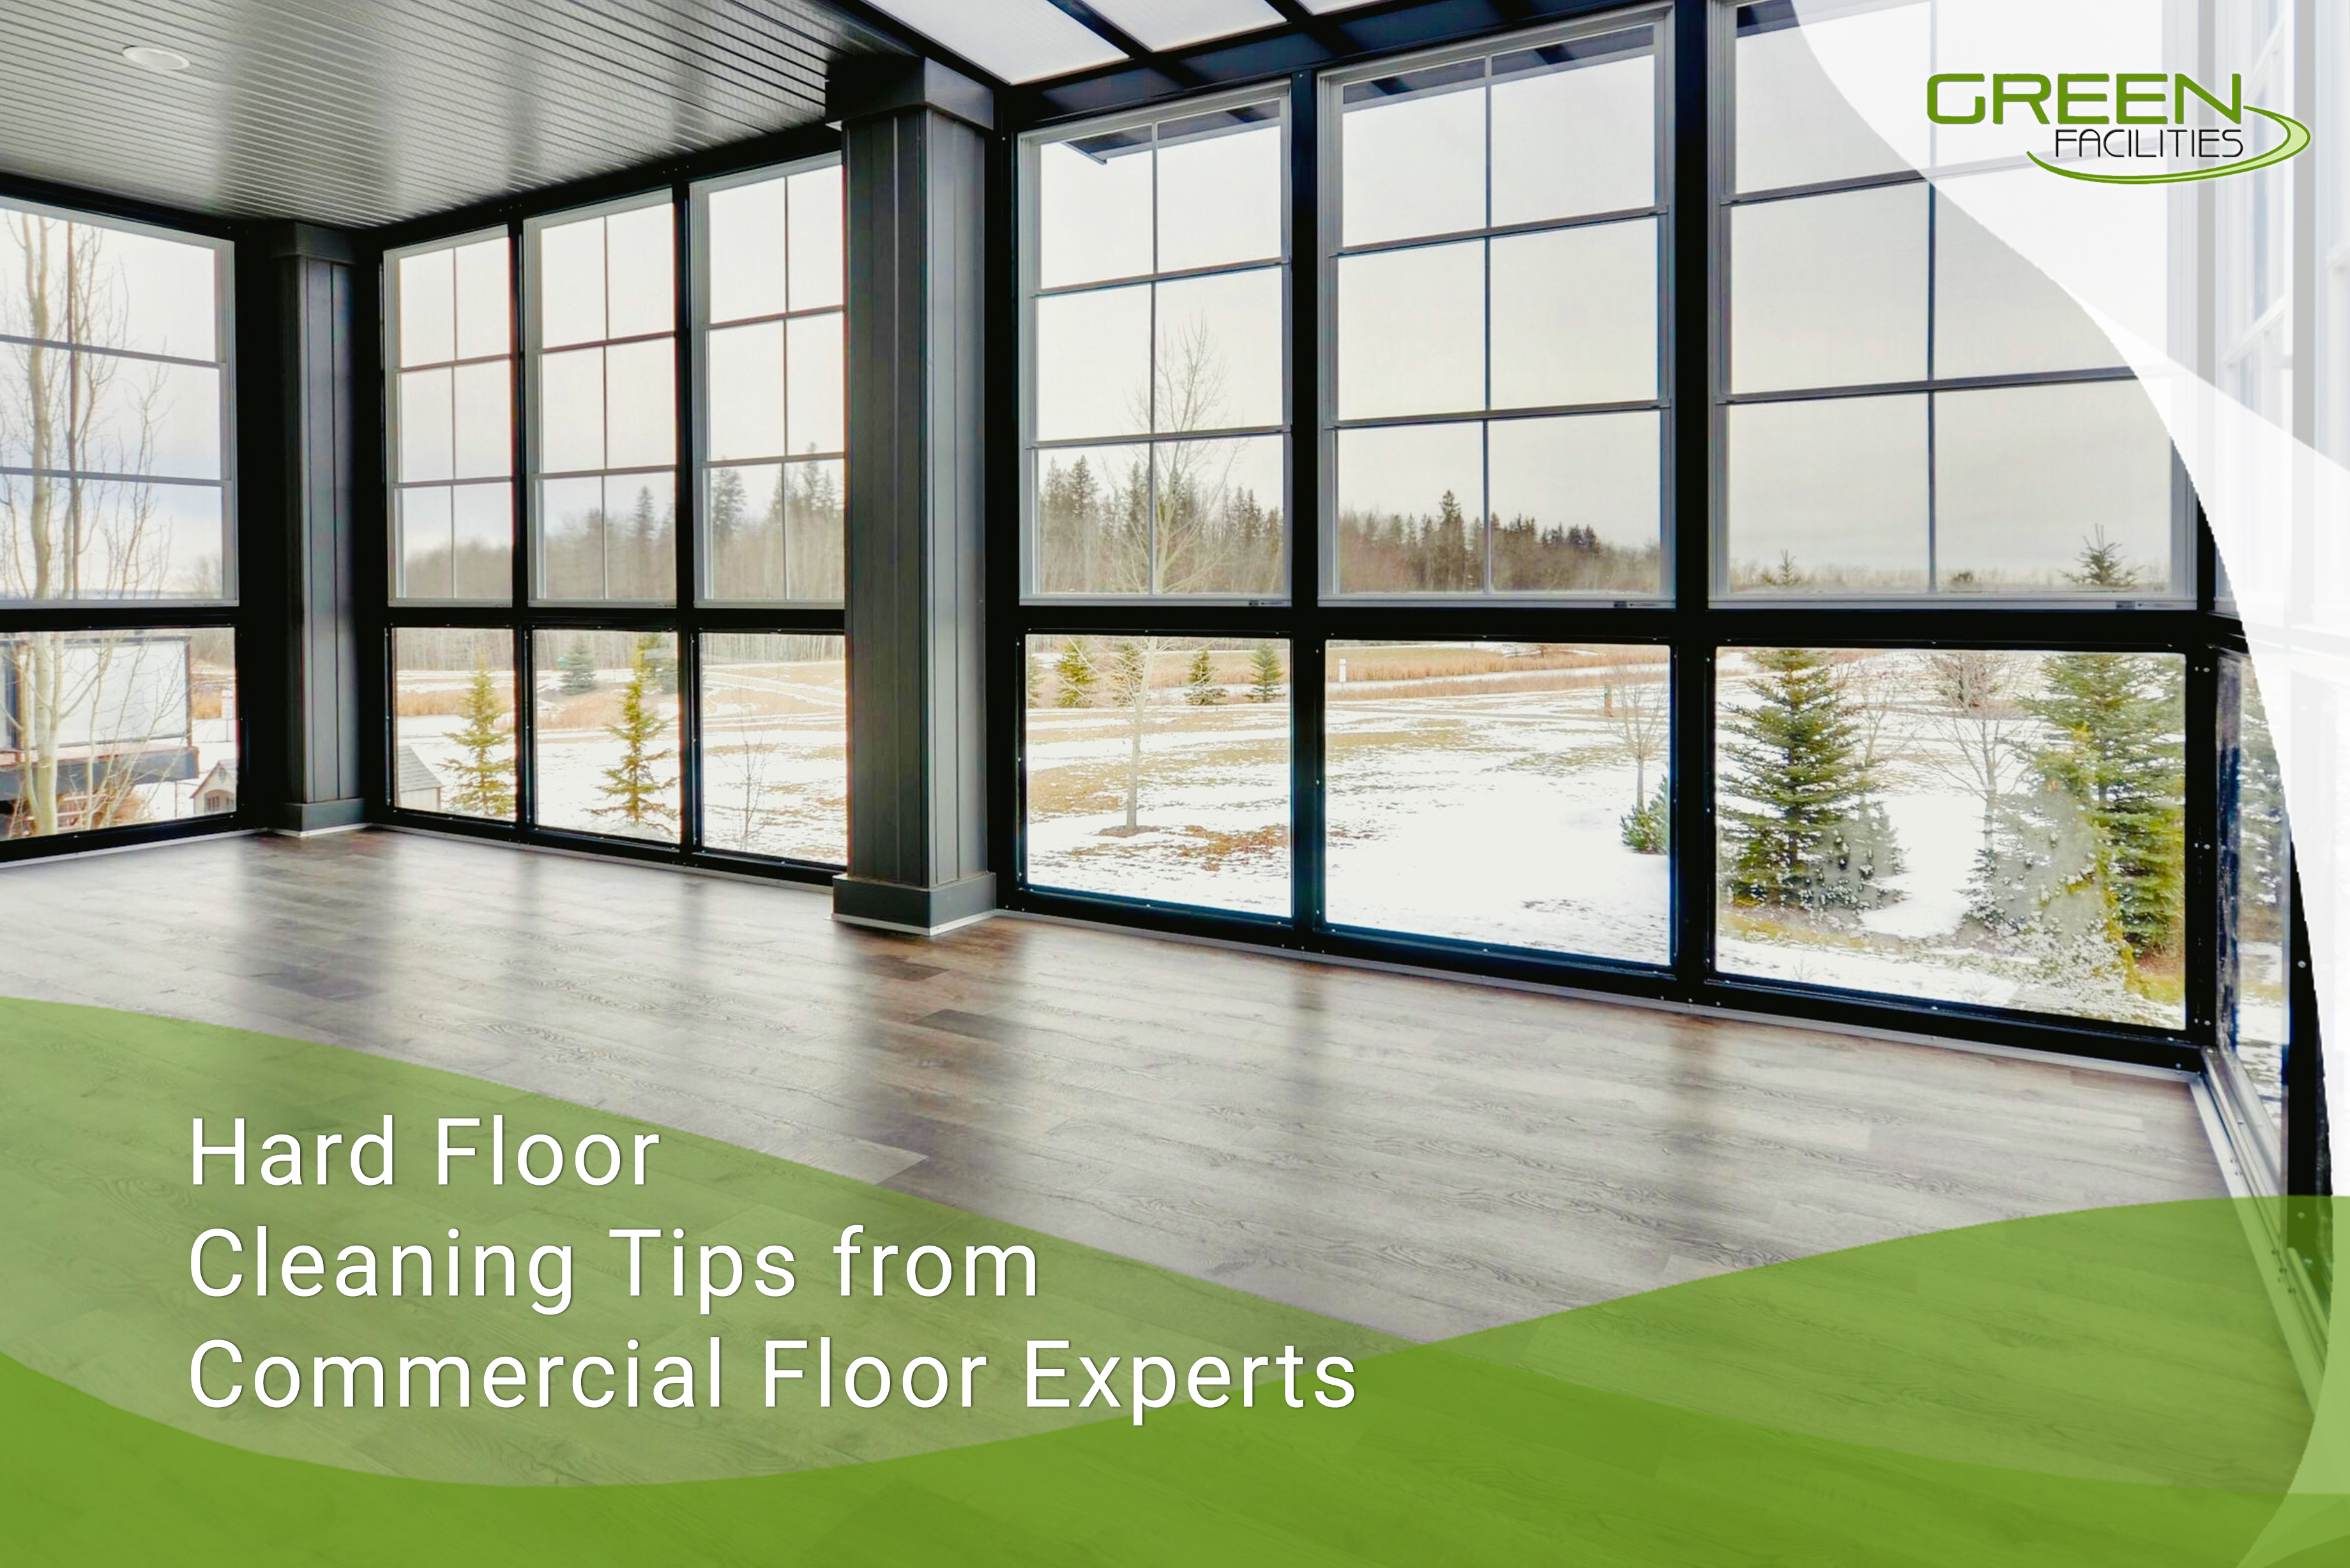 Hard-Floor-Cleaning-Tips-from-Commercial-Floor-Experts-1